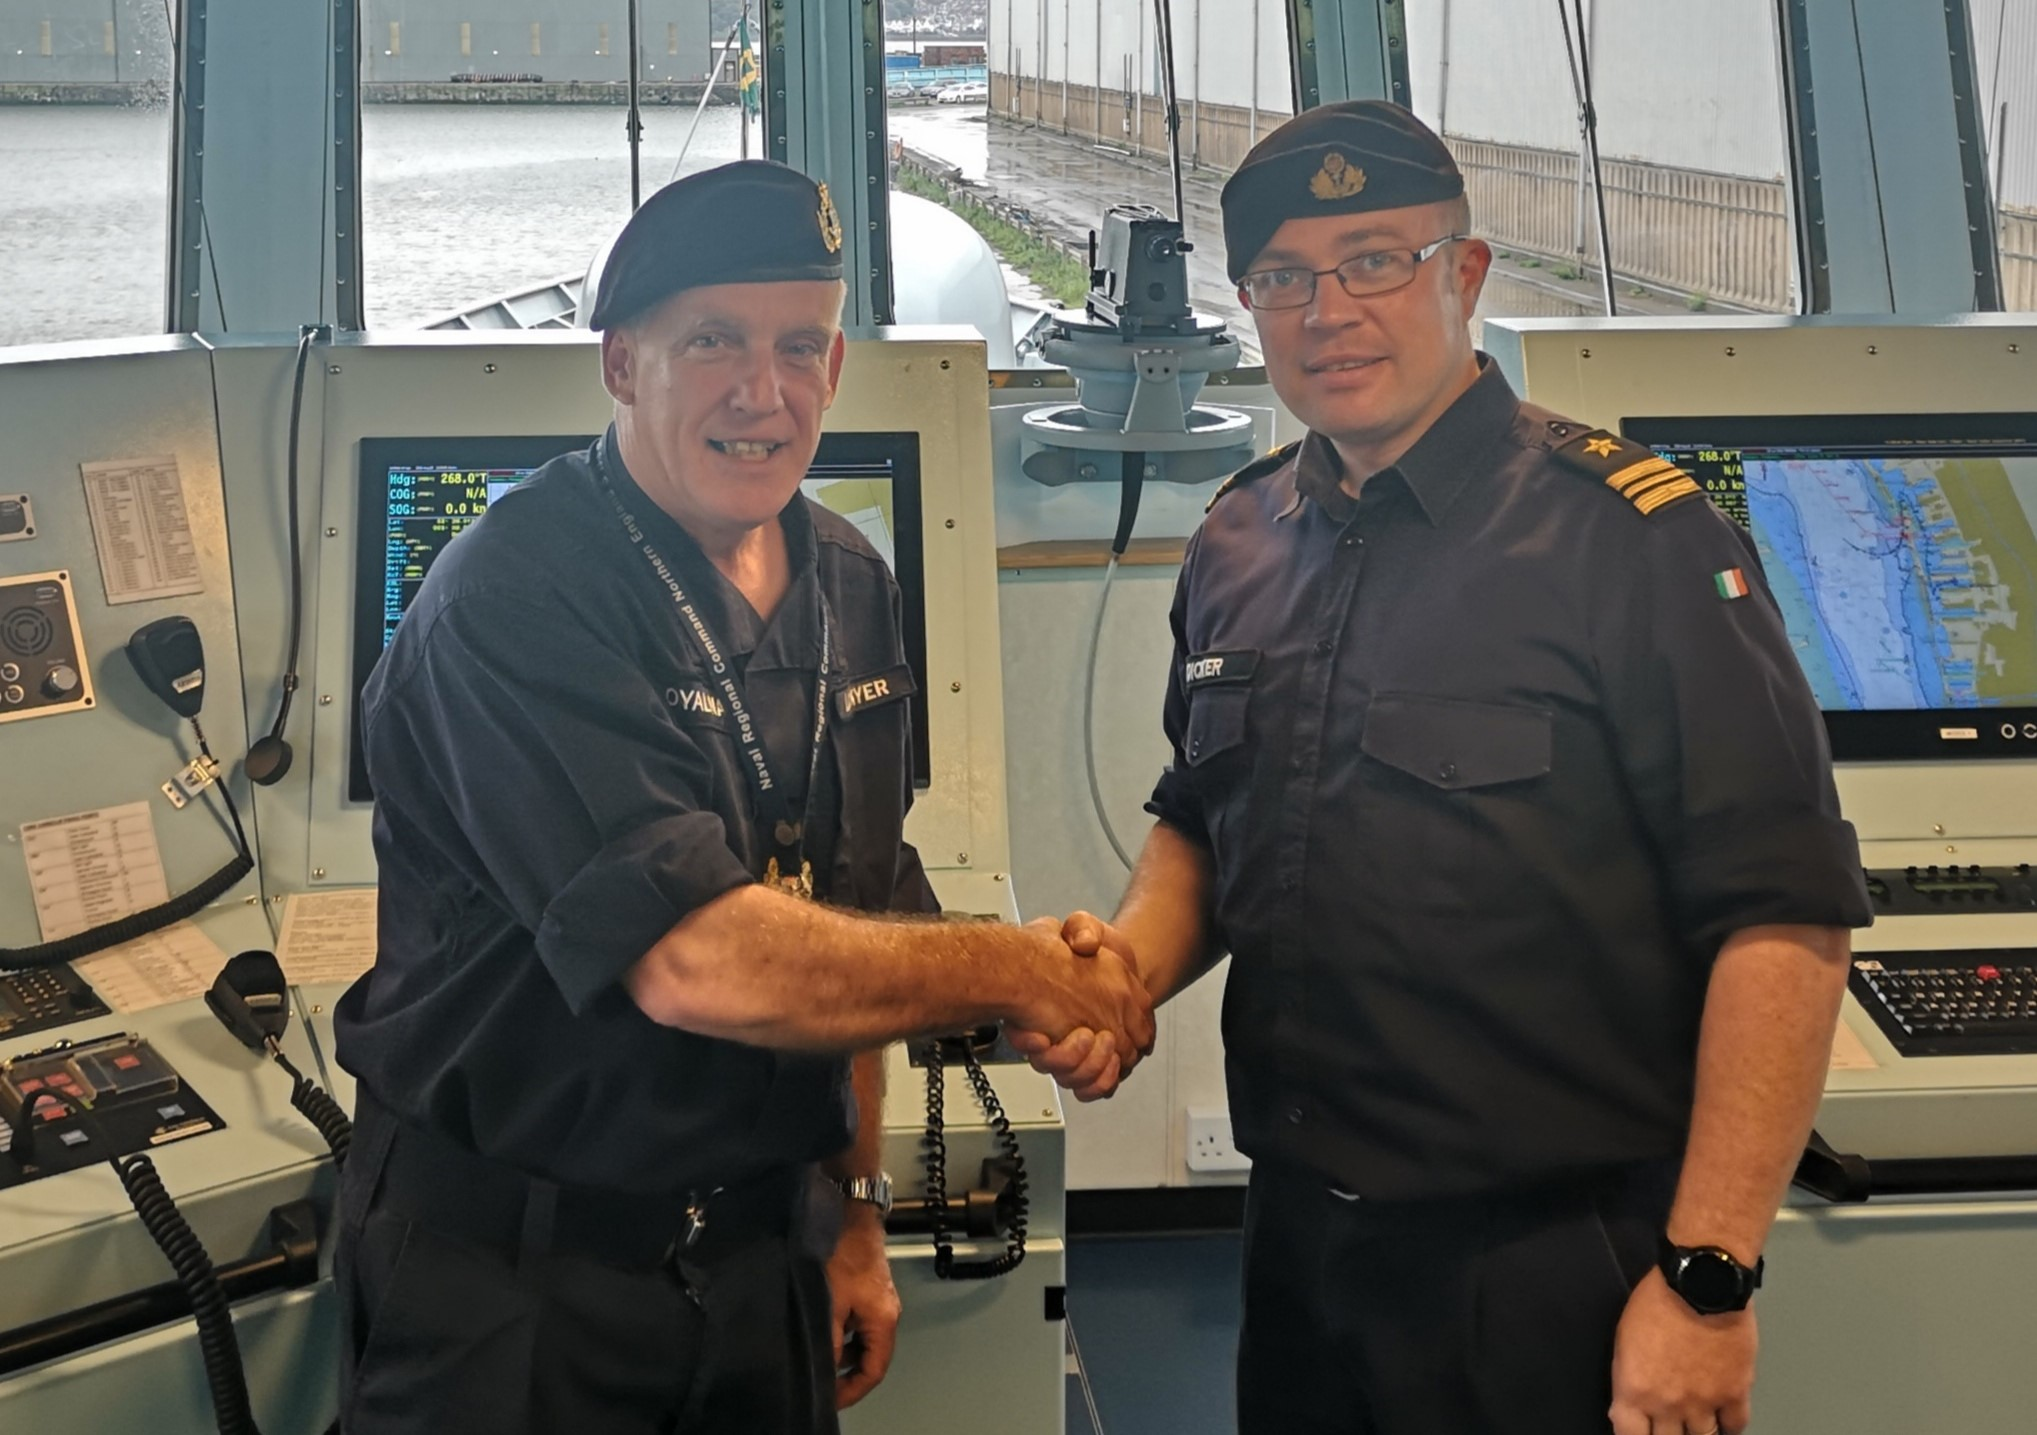 Warrant Officer 1 Rob Lockyer, of HMS Eaglet, with Lieutenant Commander Phillip Dicker, commanding officer of LE George Bernard Shaw which is visiting Liverpool this weekend.